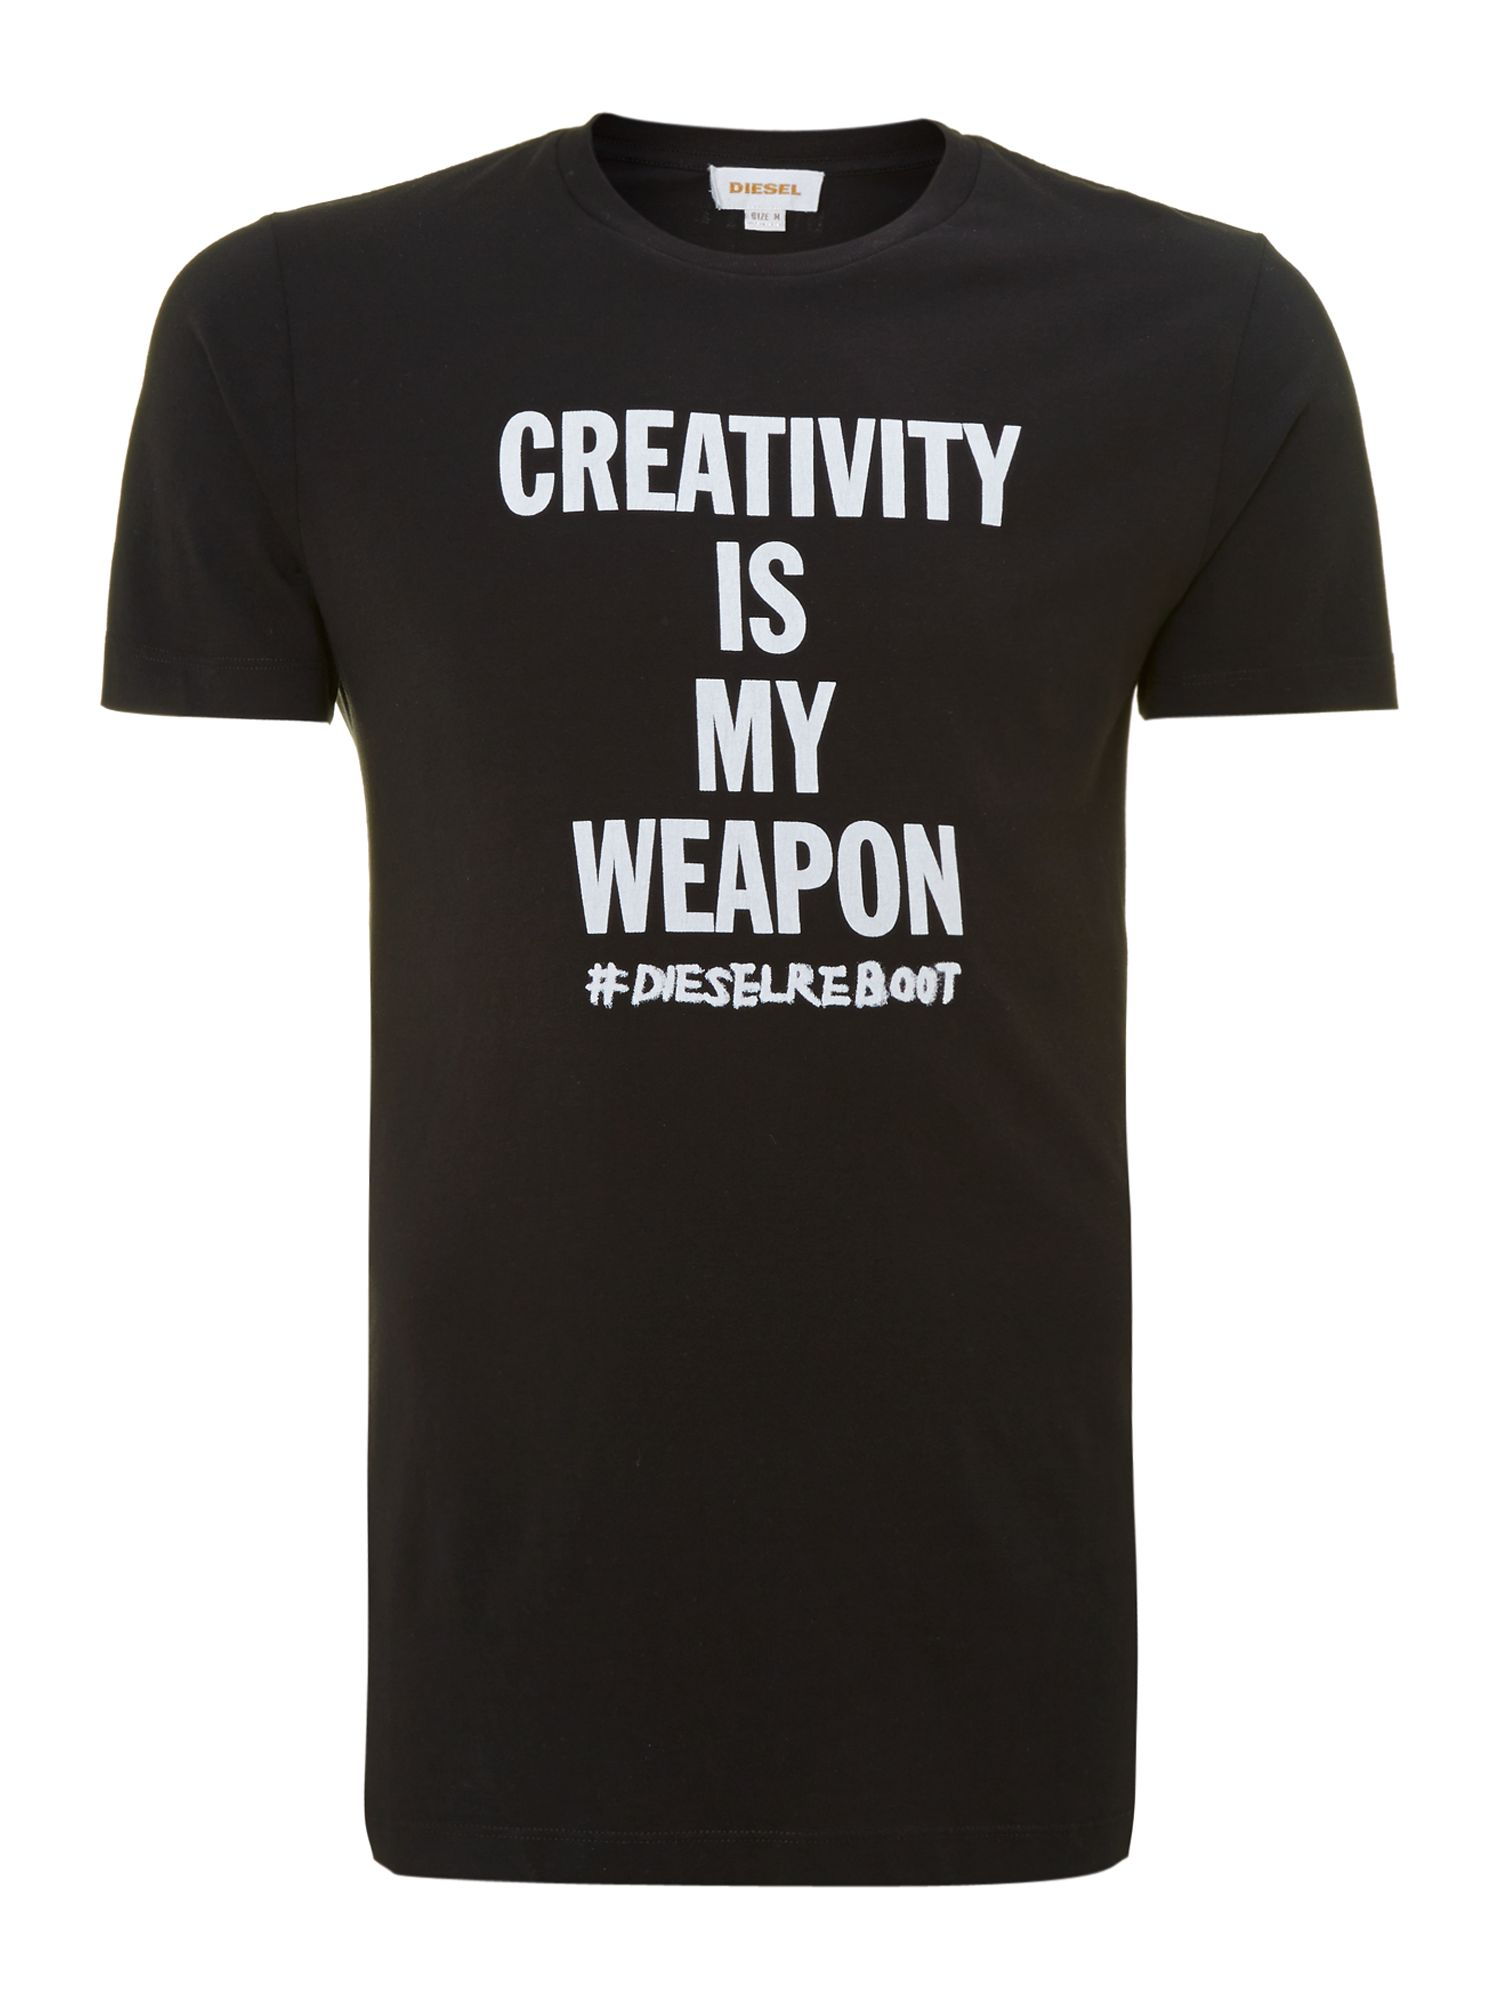 Creativity slogan t shirt